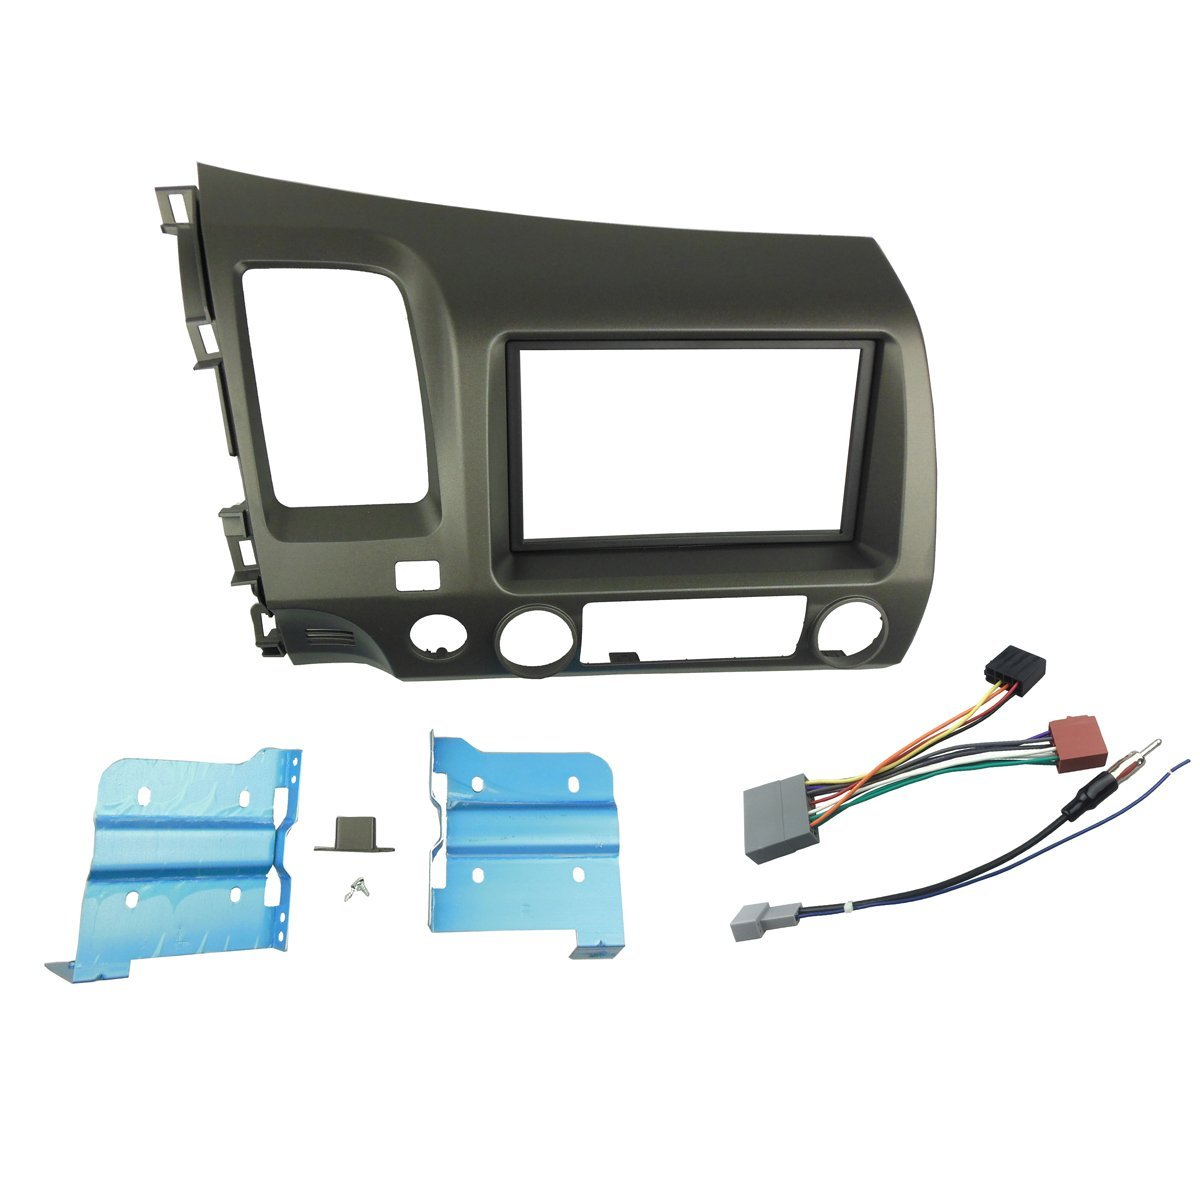 Cheap Honda Civic Stereo Wiring Diagram Find For Si Fog Lights Get Quotations Dkmus Double Din Radio Dash Install Mount Trim Kit 2006 2011